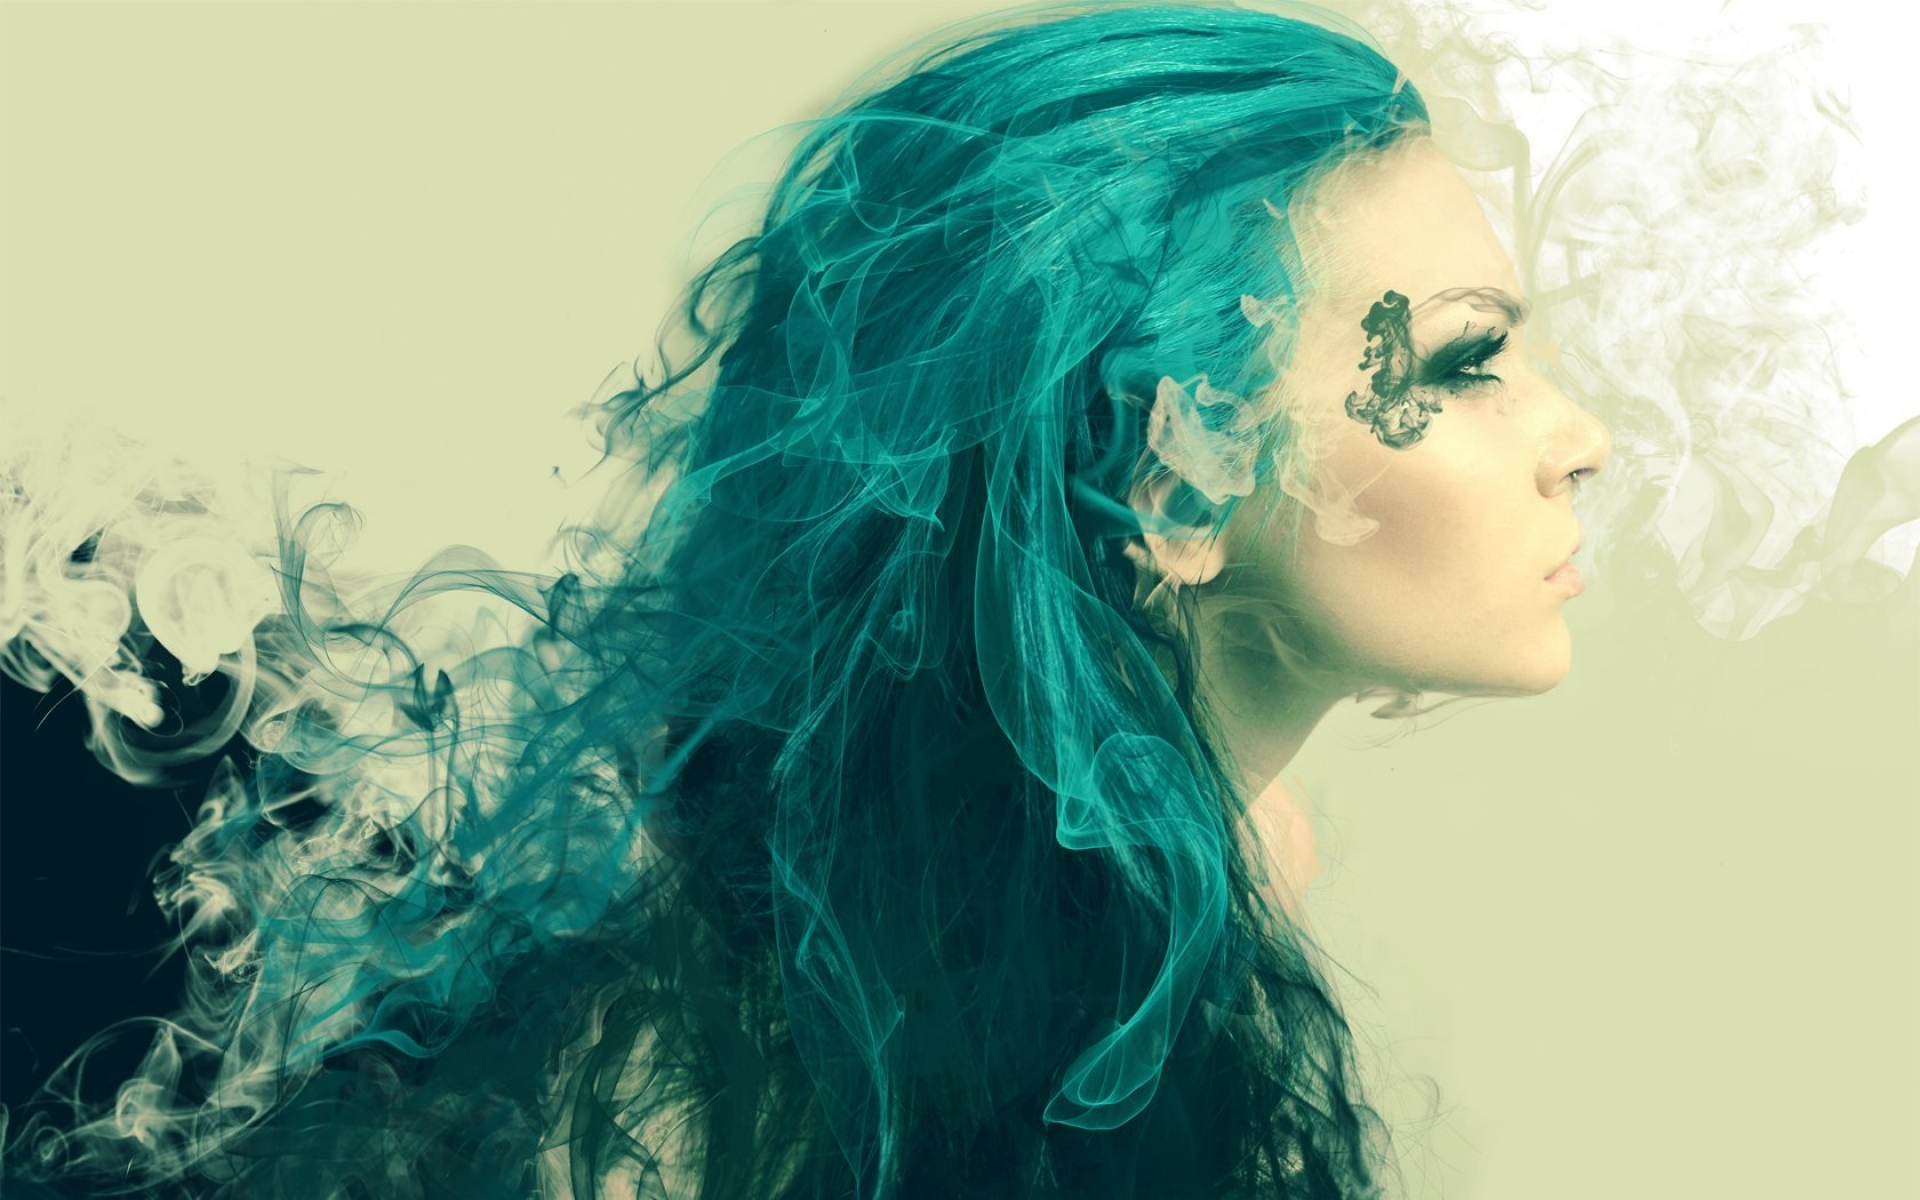 1920x1200 Woman Turquoise Hair Looking